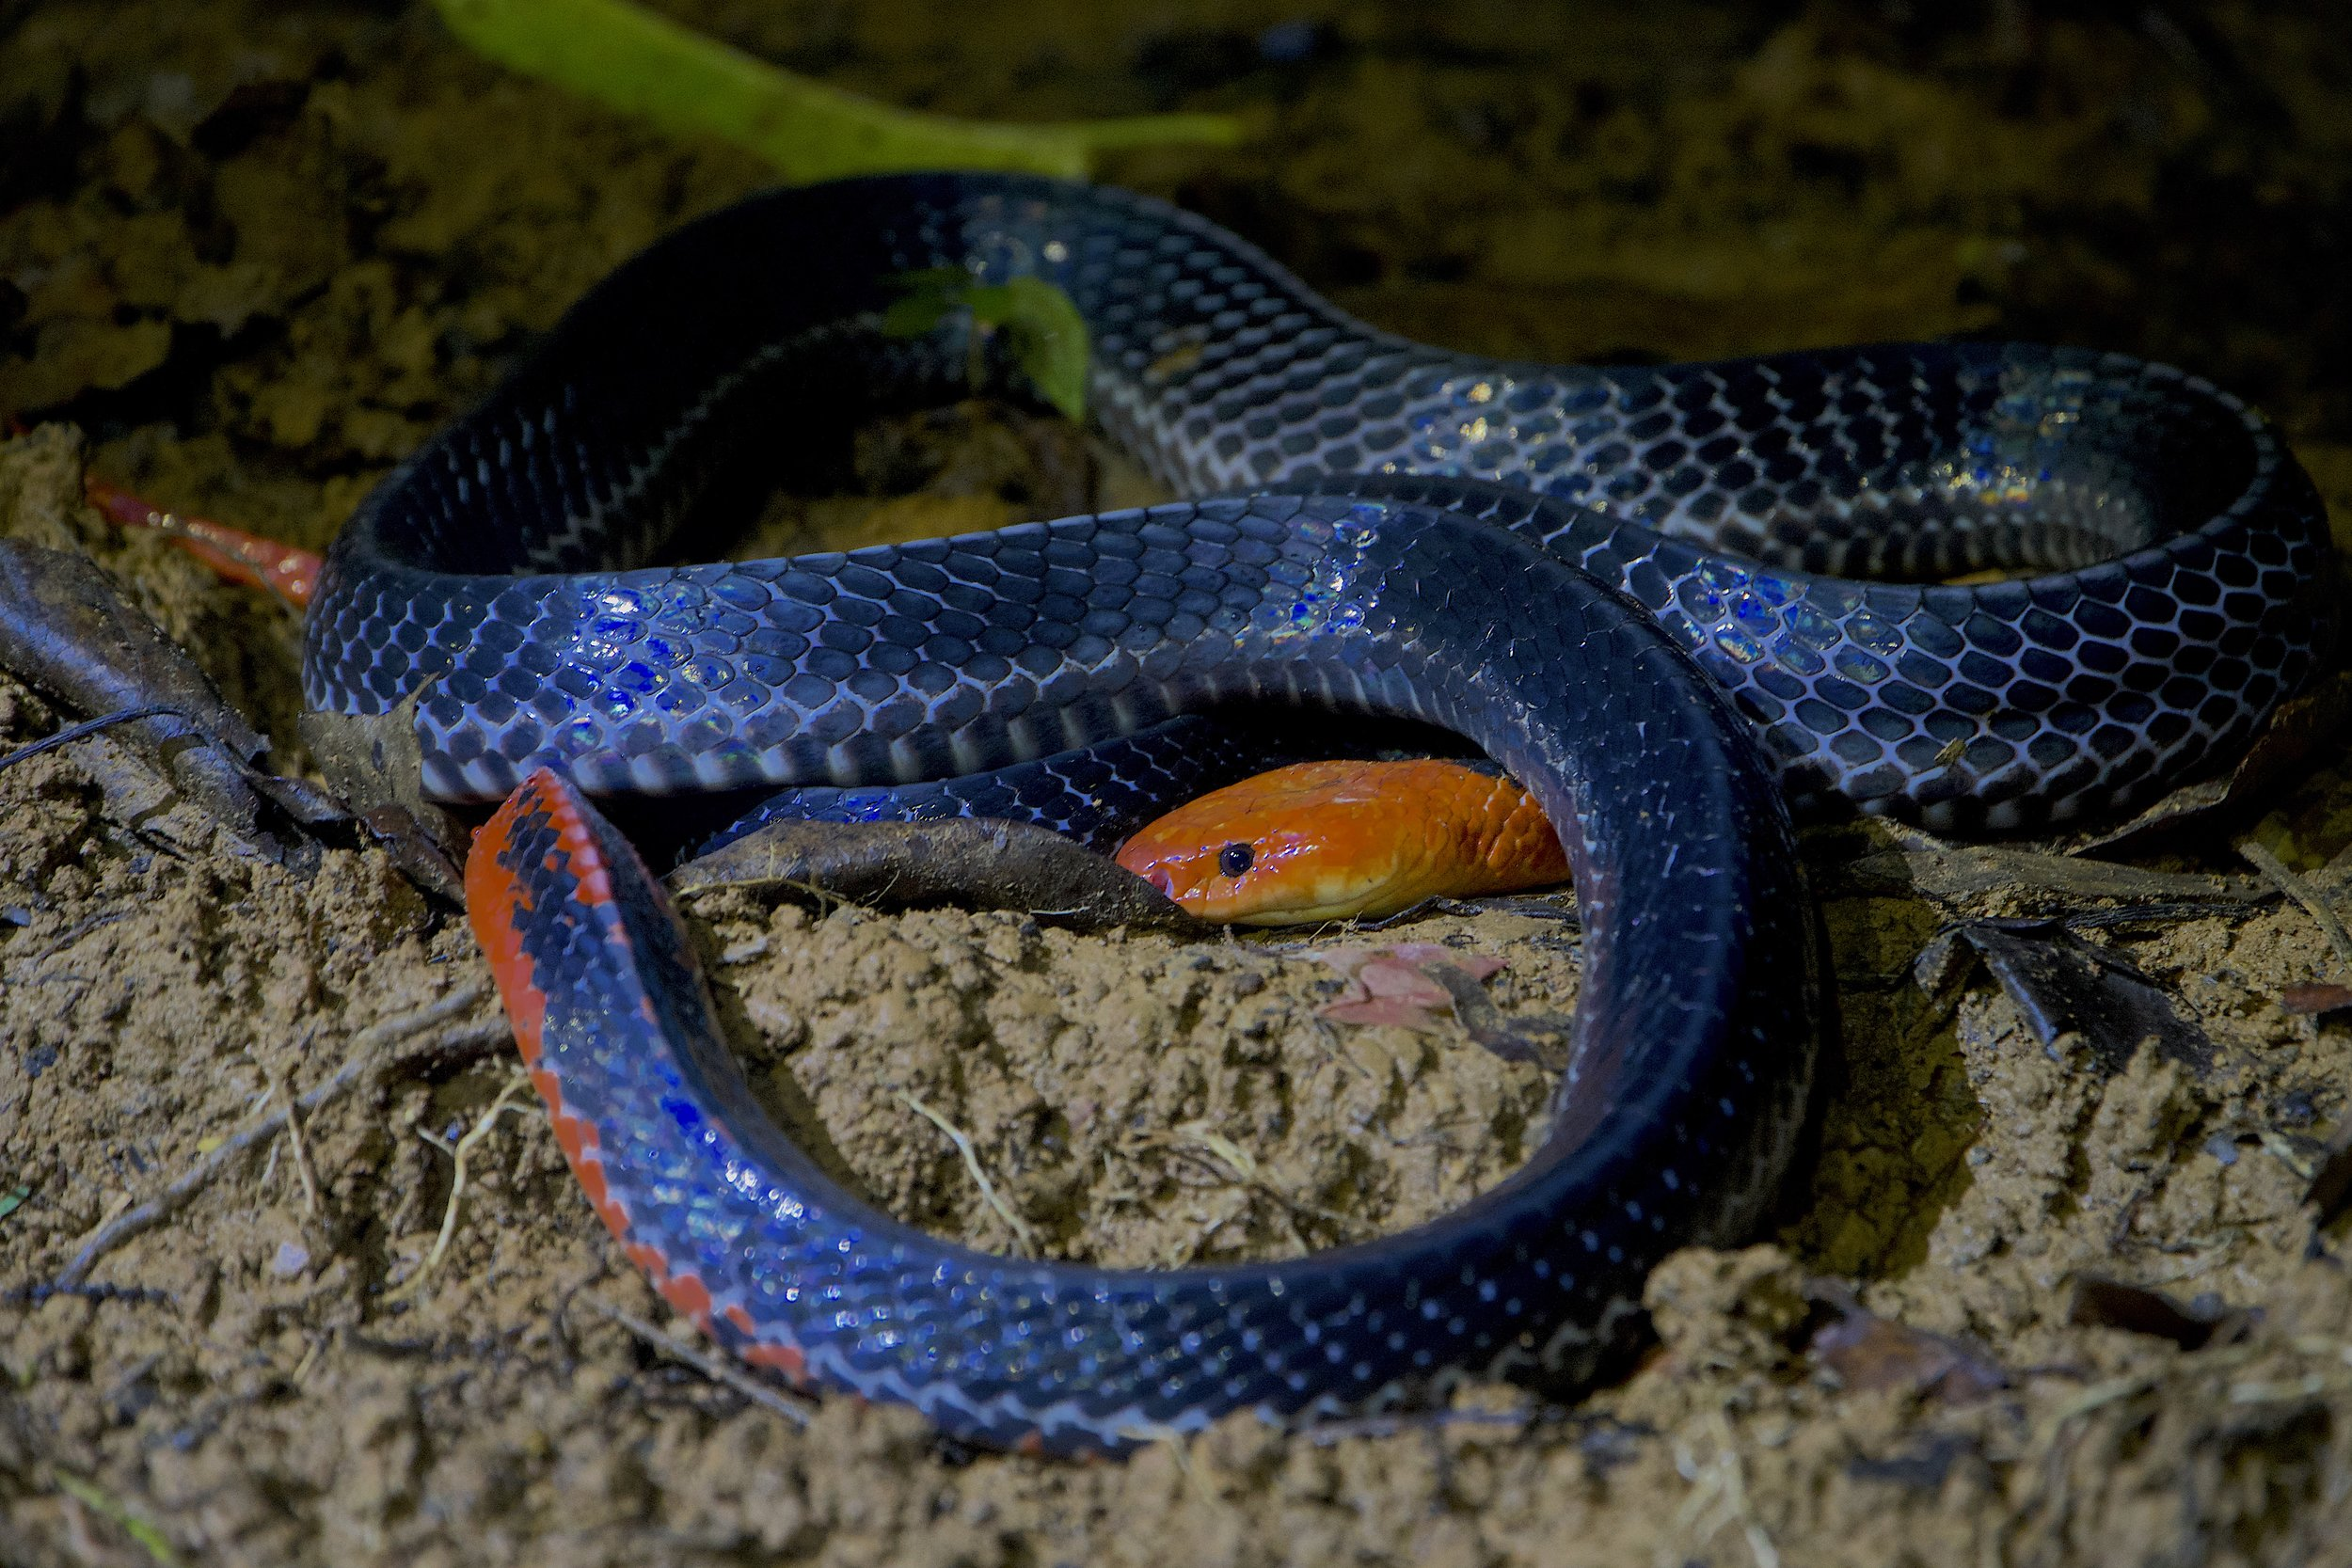 The gorgeous, but intimidating Red Headed Krait (Bungarus flaviceps)